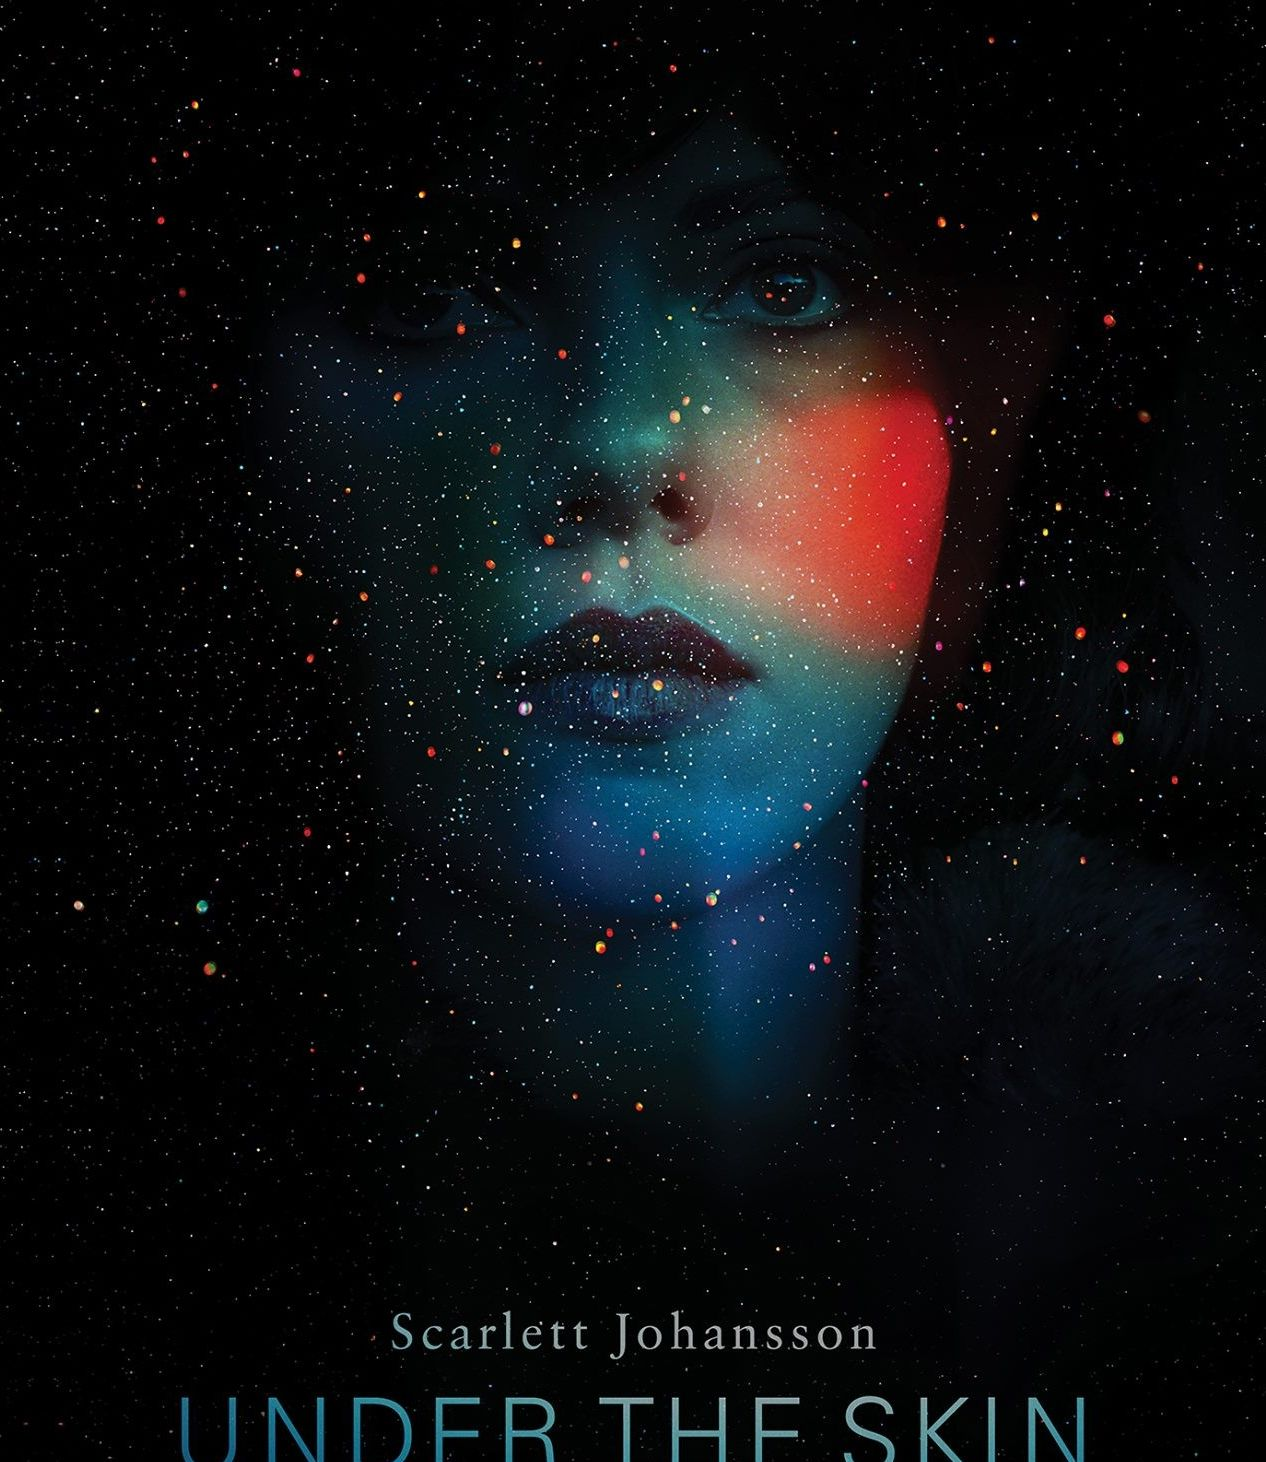 Under The Skin sky poster